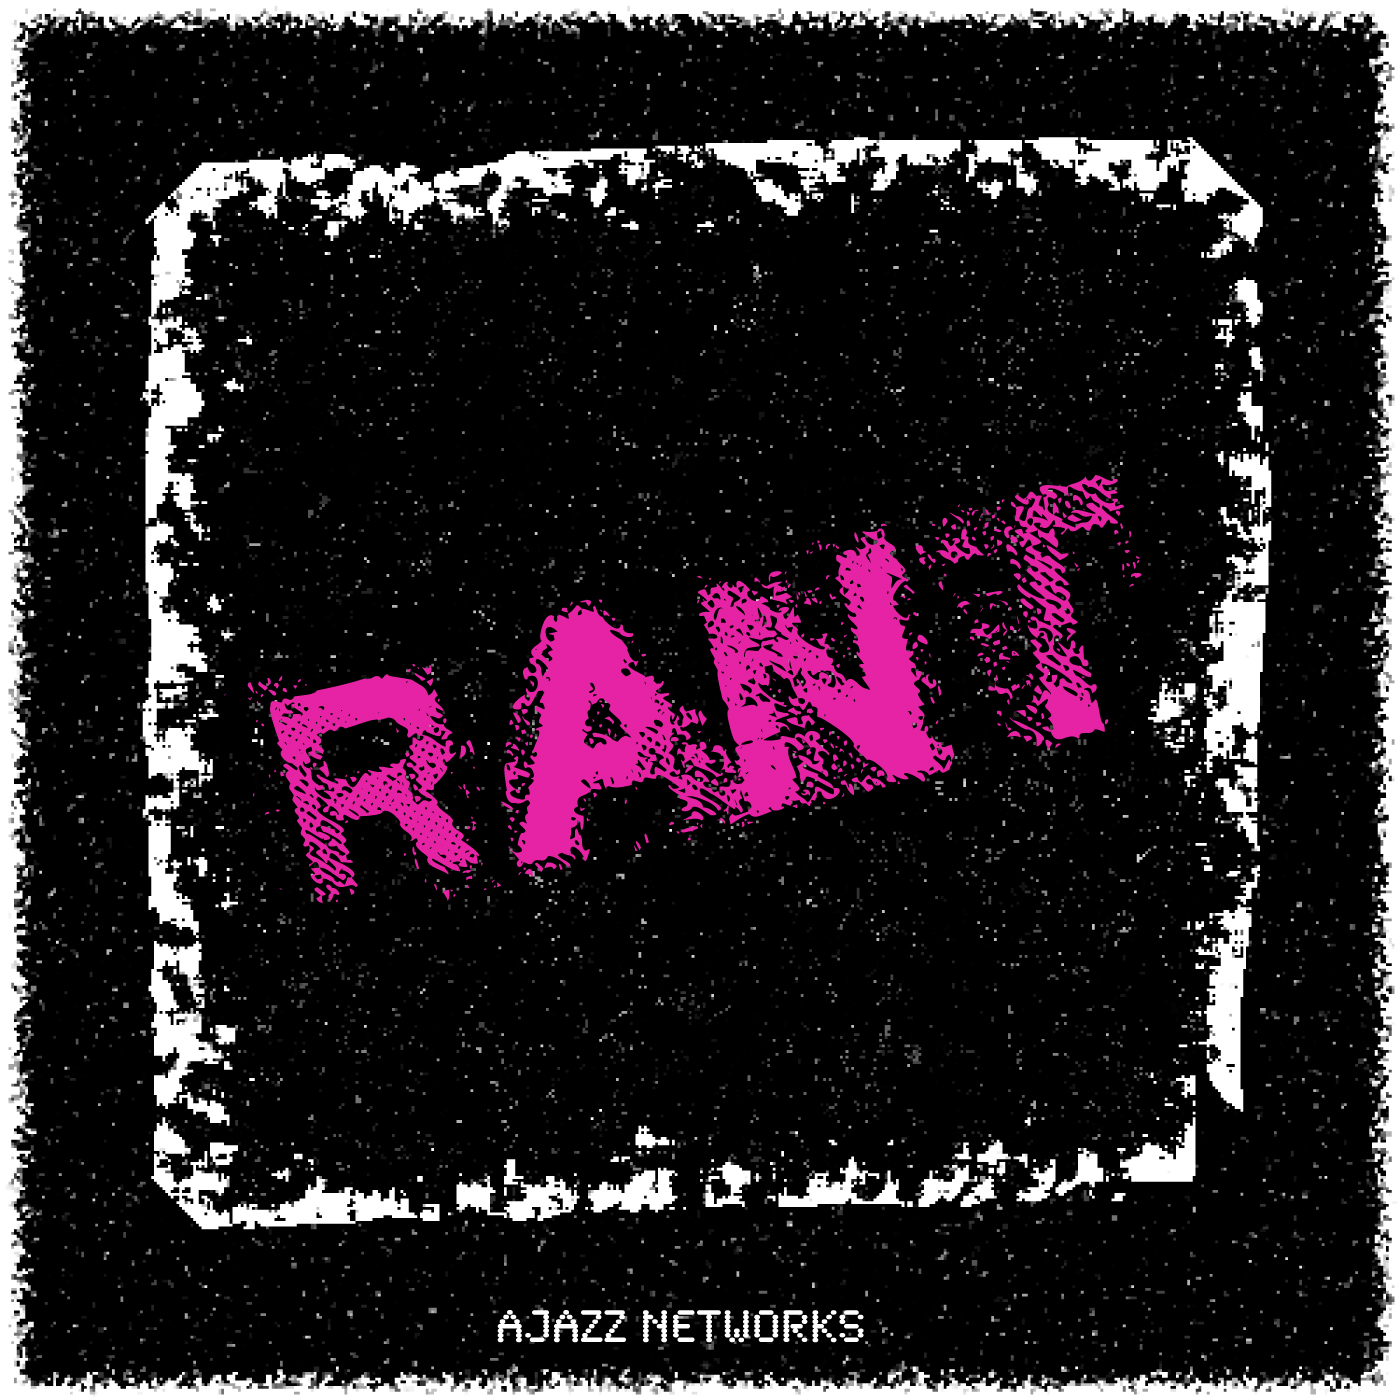 <![CDATA[Ajazz Networks - R.A.N.T. Podcast]]>